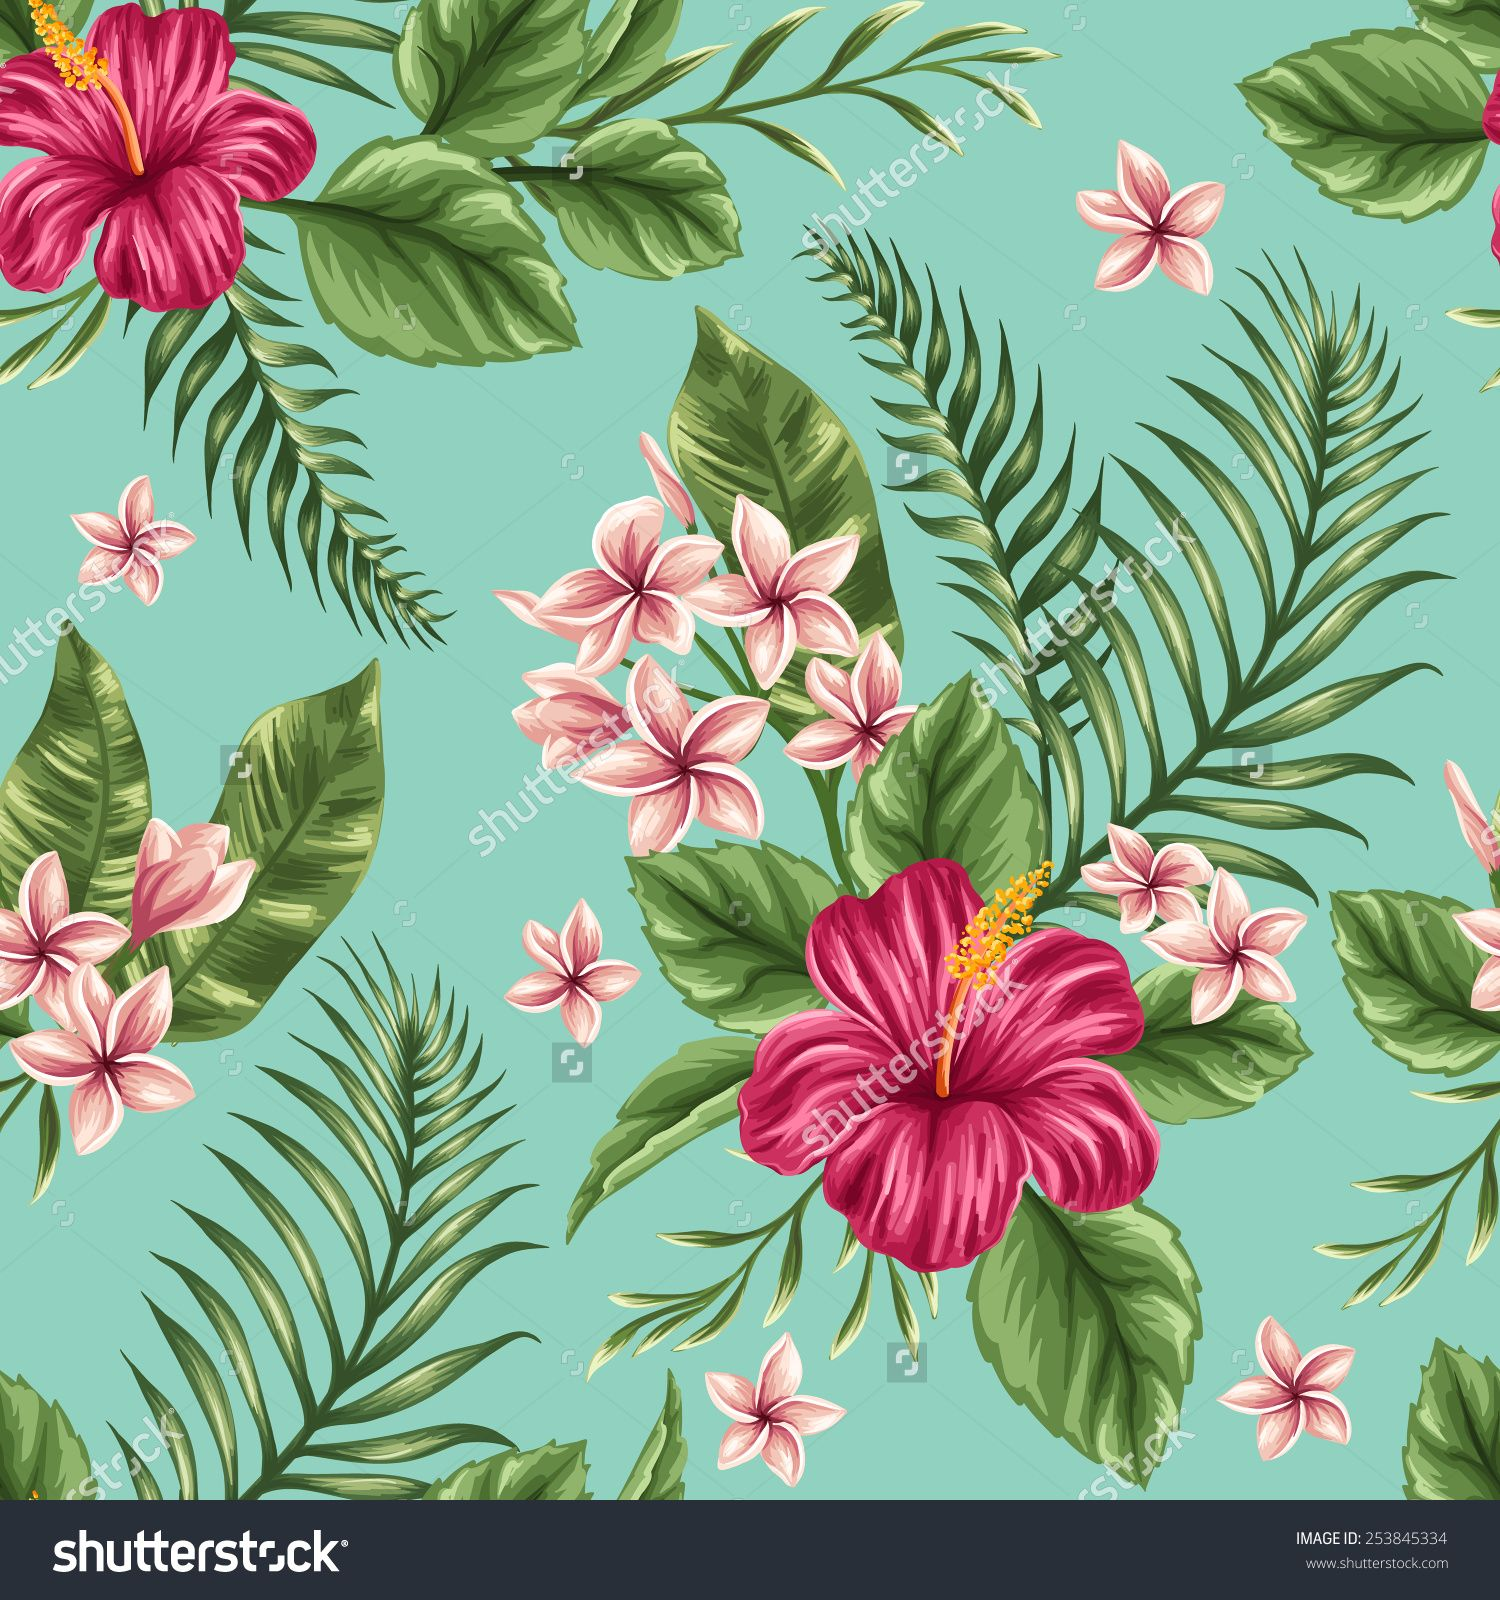 Tropical Floral Seamless Pattern With Plumeria And Hibiscus Flowers Stock Vector Illustration 253845334 : Shutterstock #flower #floral